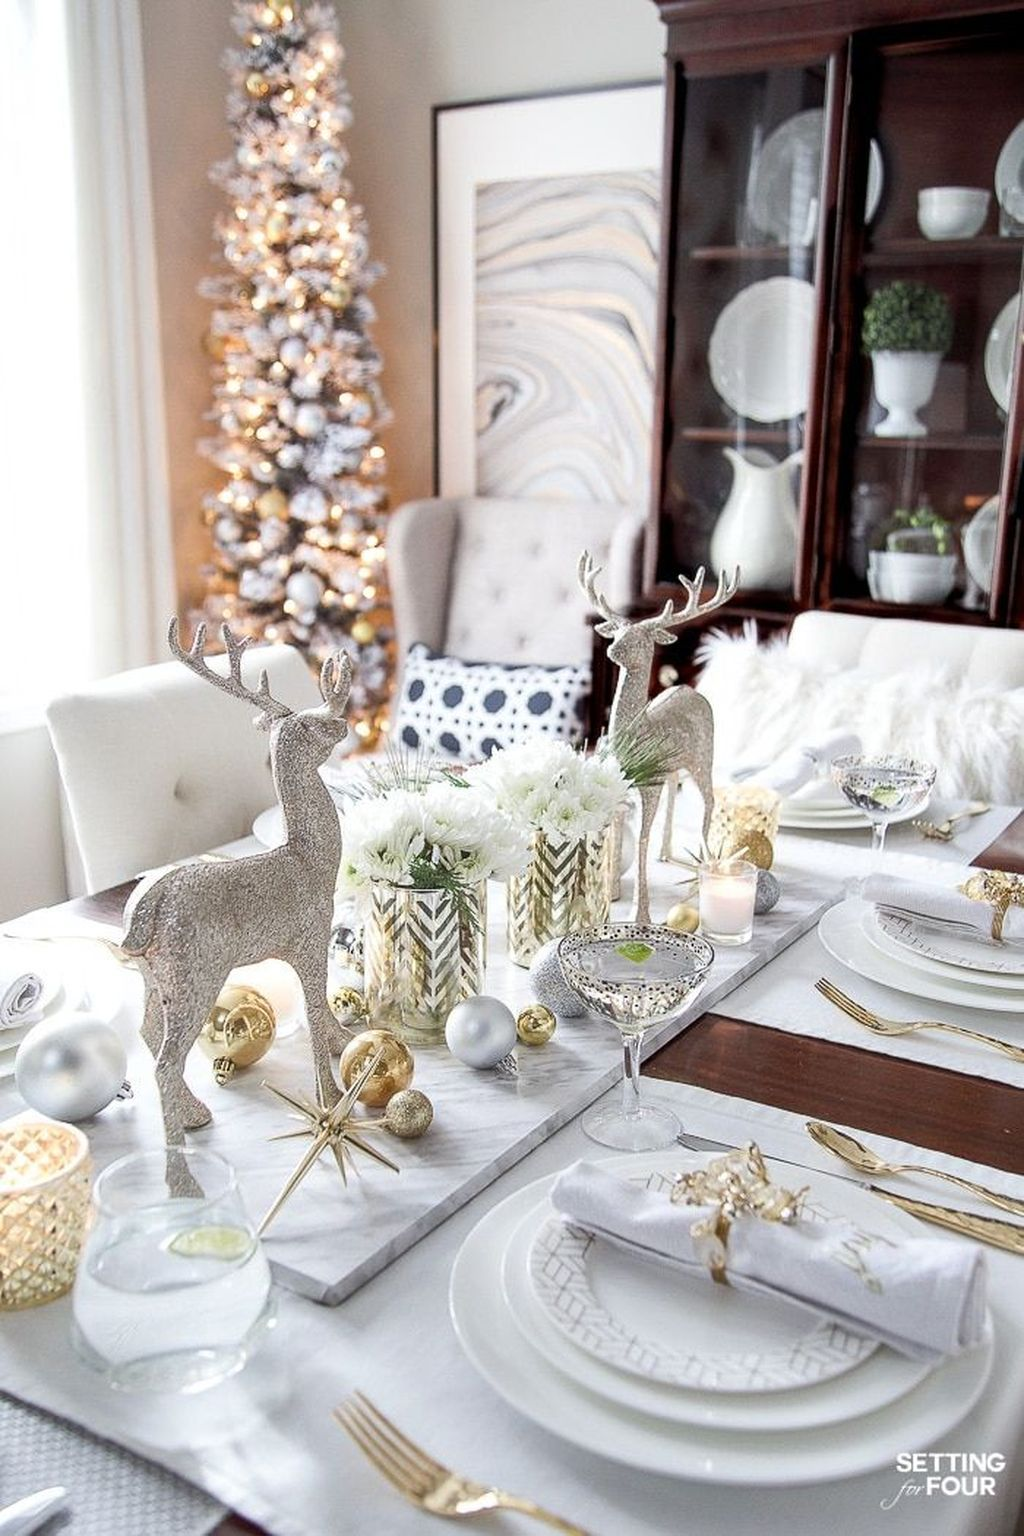 Inspiring Christmas Table Centerpieces To Get Beautiful Dining Room Decor Christmas Dining Table Christmas Dinner Table Christmas Table Centerpieces